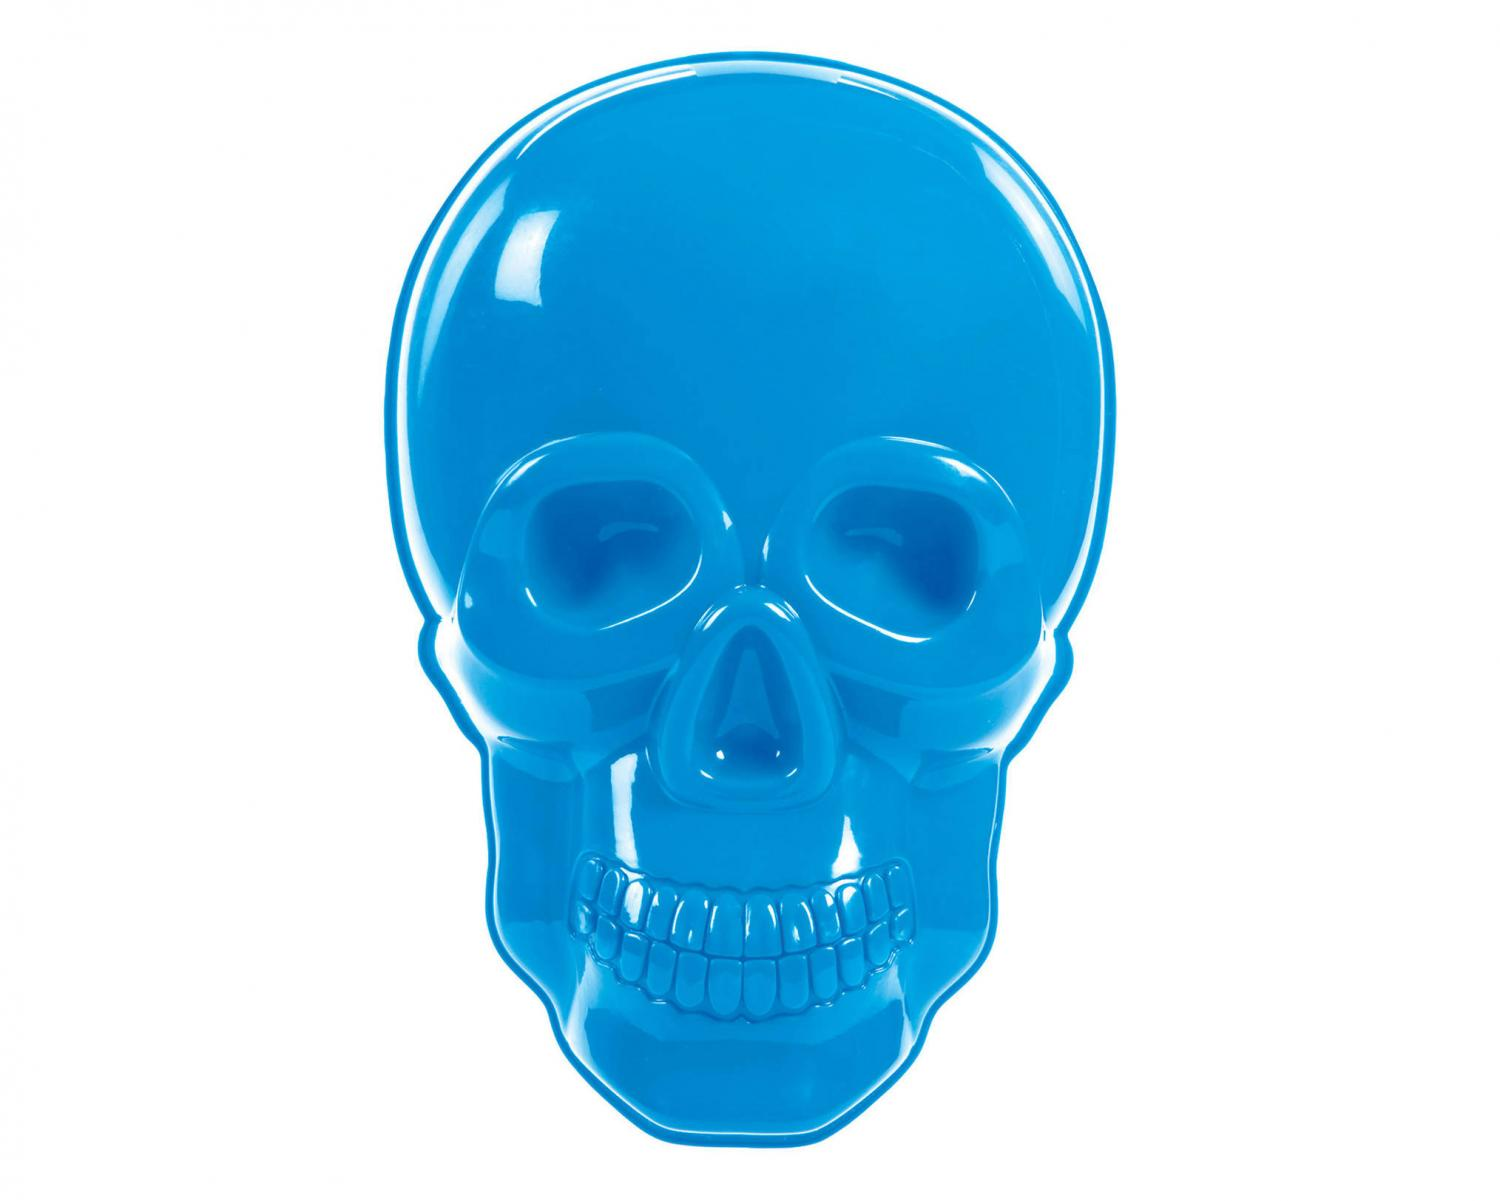 Bag O Bones Beach Skeleton - Plastic beach molds toy let you create human skeleton in sand